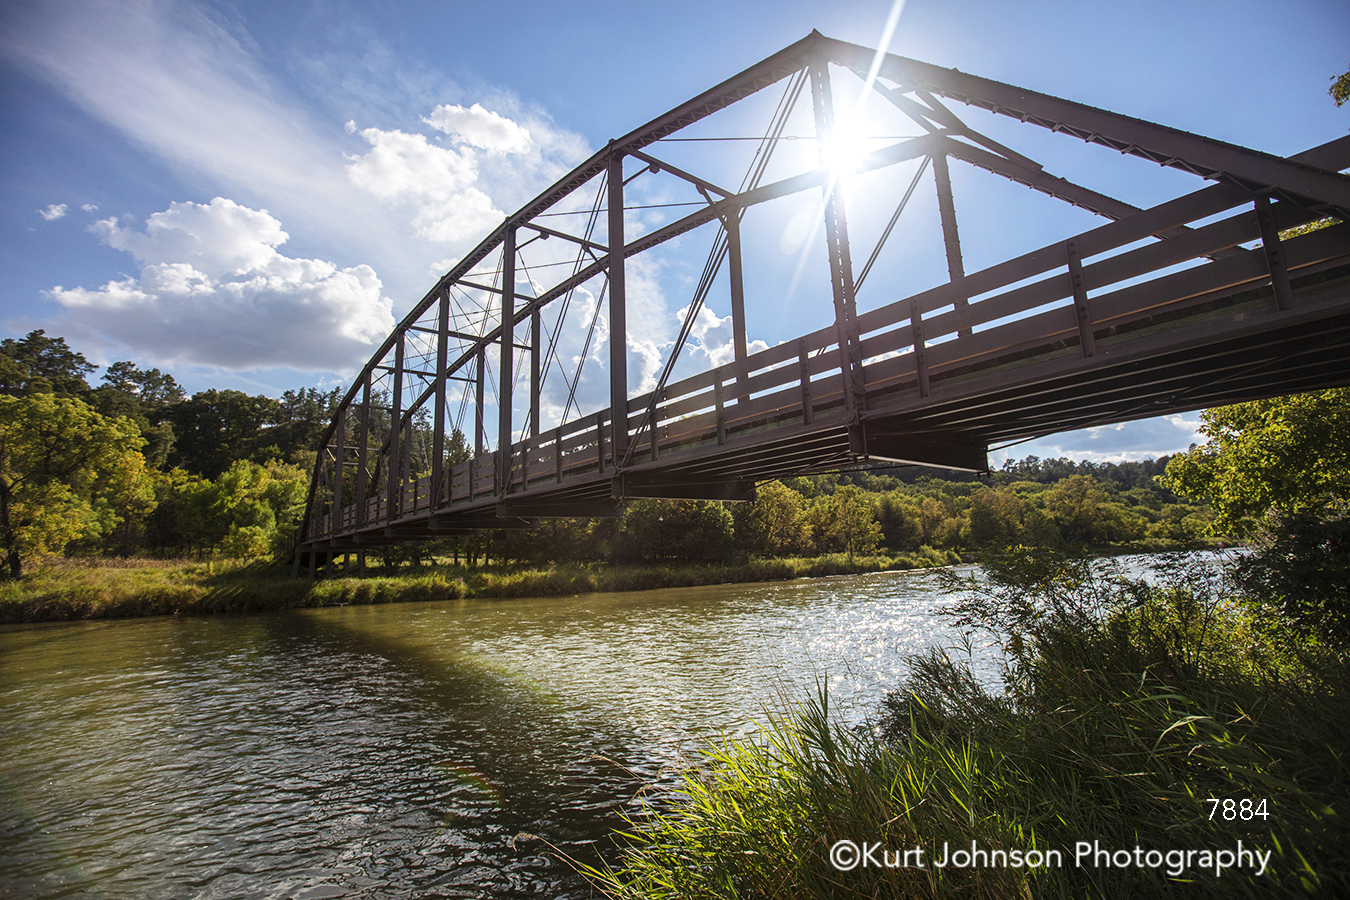 sun sunflare blue sky clouds brown metal bridge touchstone water waterscape lines river